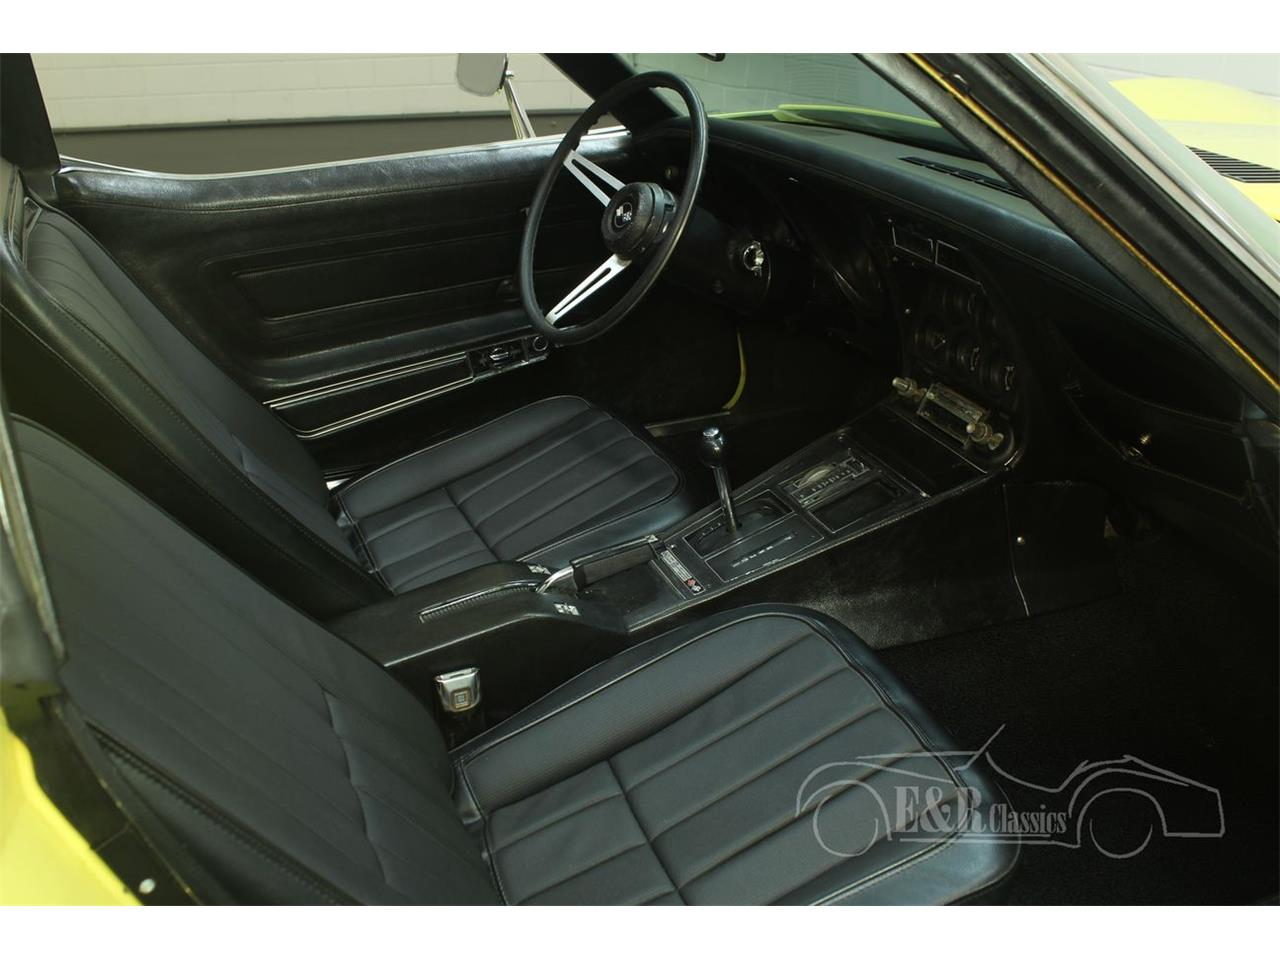 Large Picture of 1974 Corvette located in noord brabant - $34,292.00 - PFBT